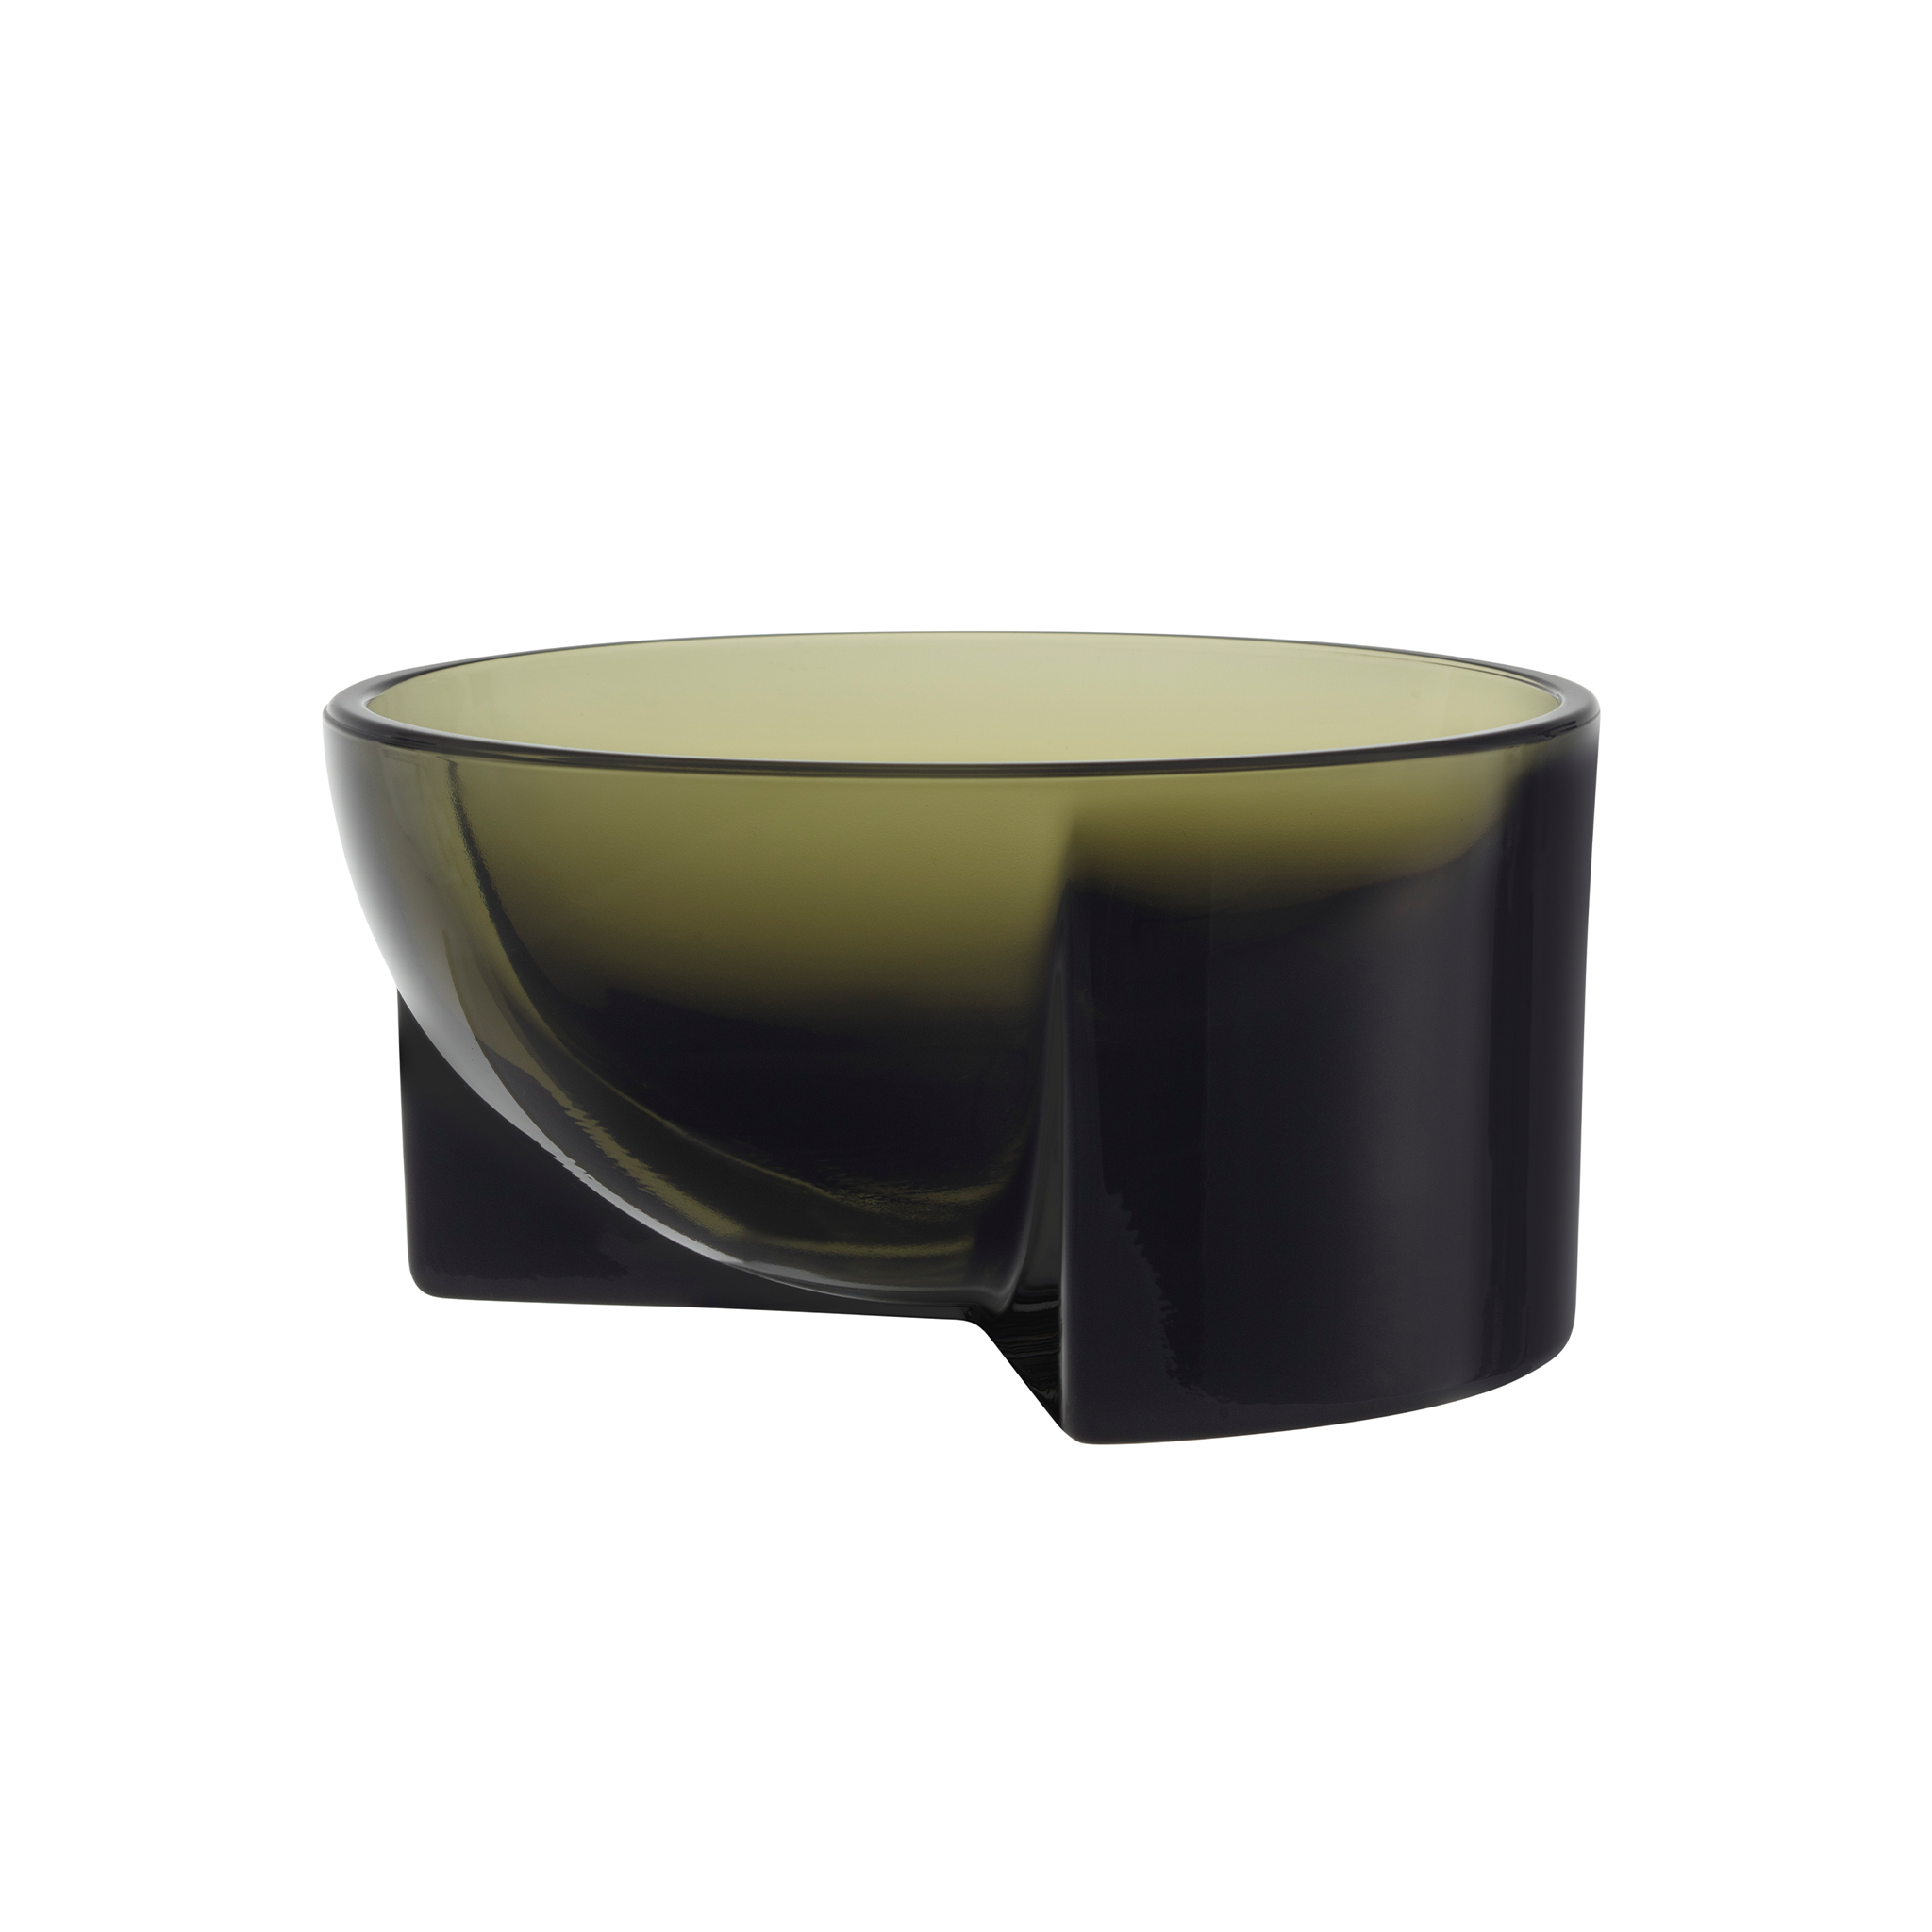 Kuru Glass Bowls by Philippe Malouin for Iittala